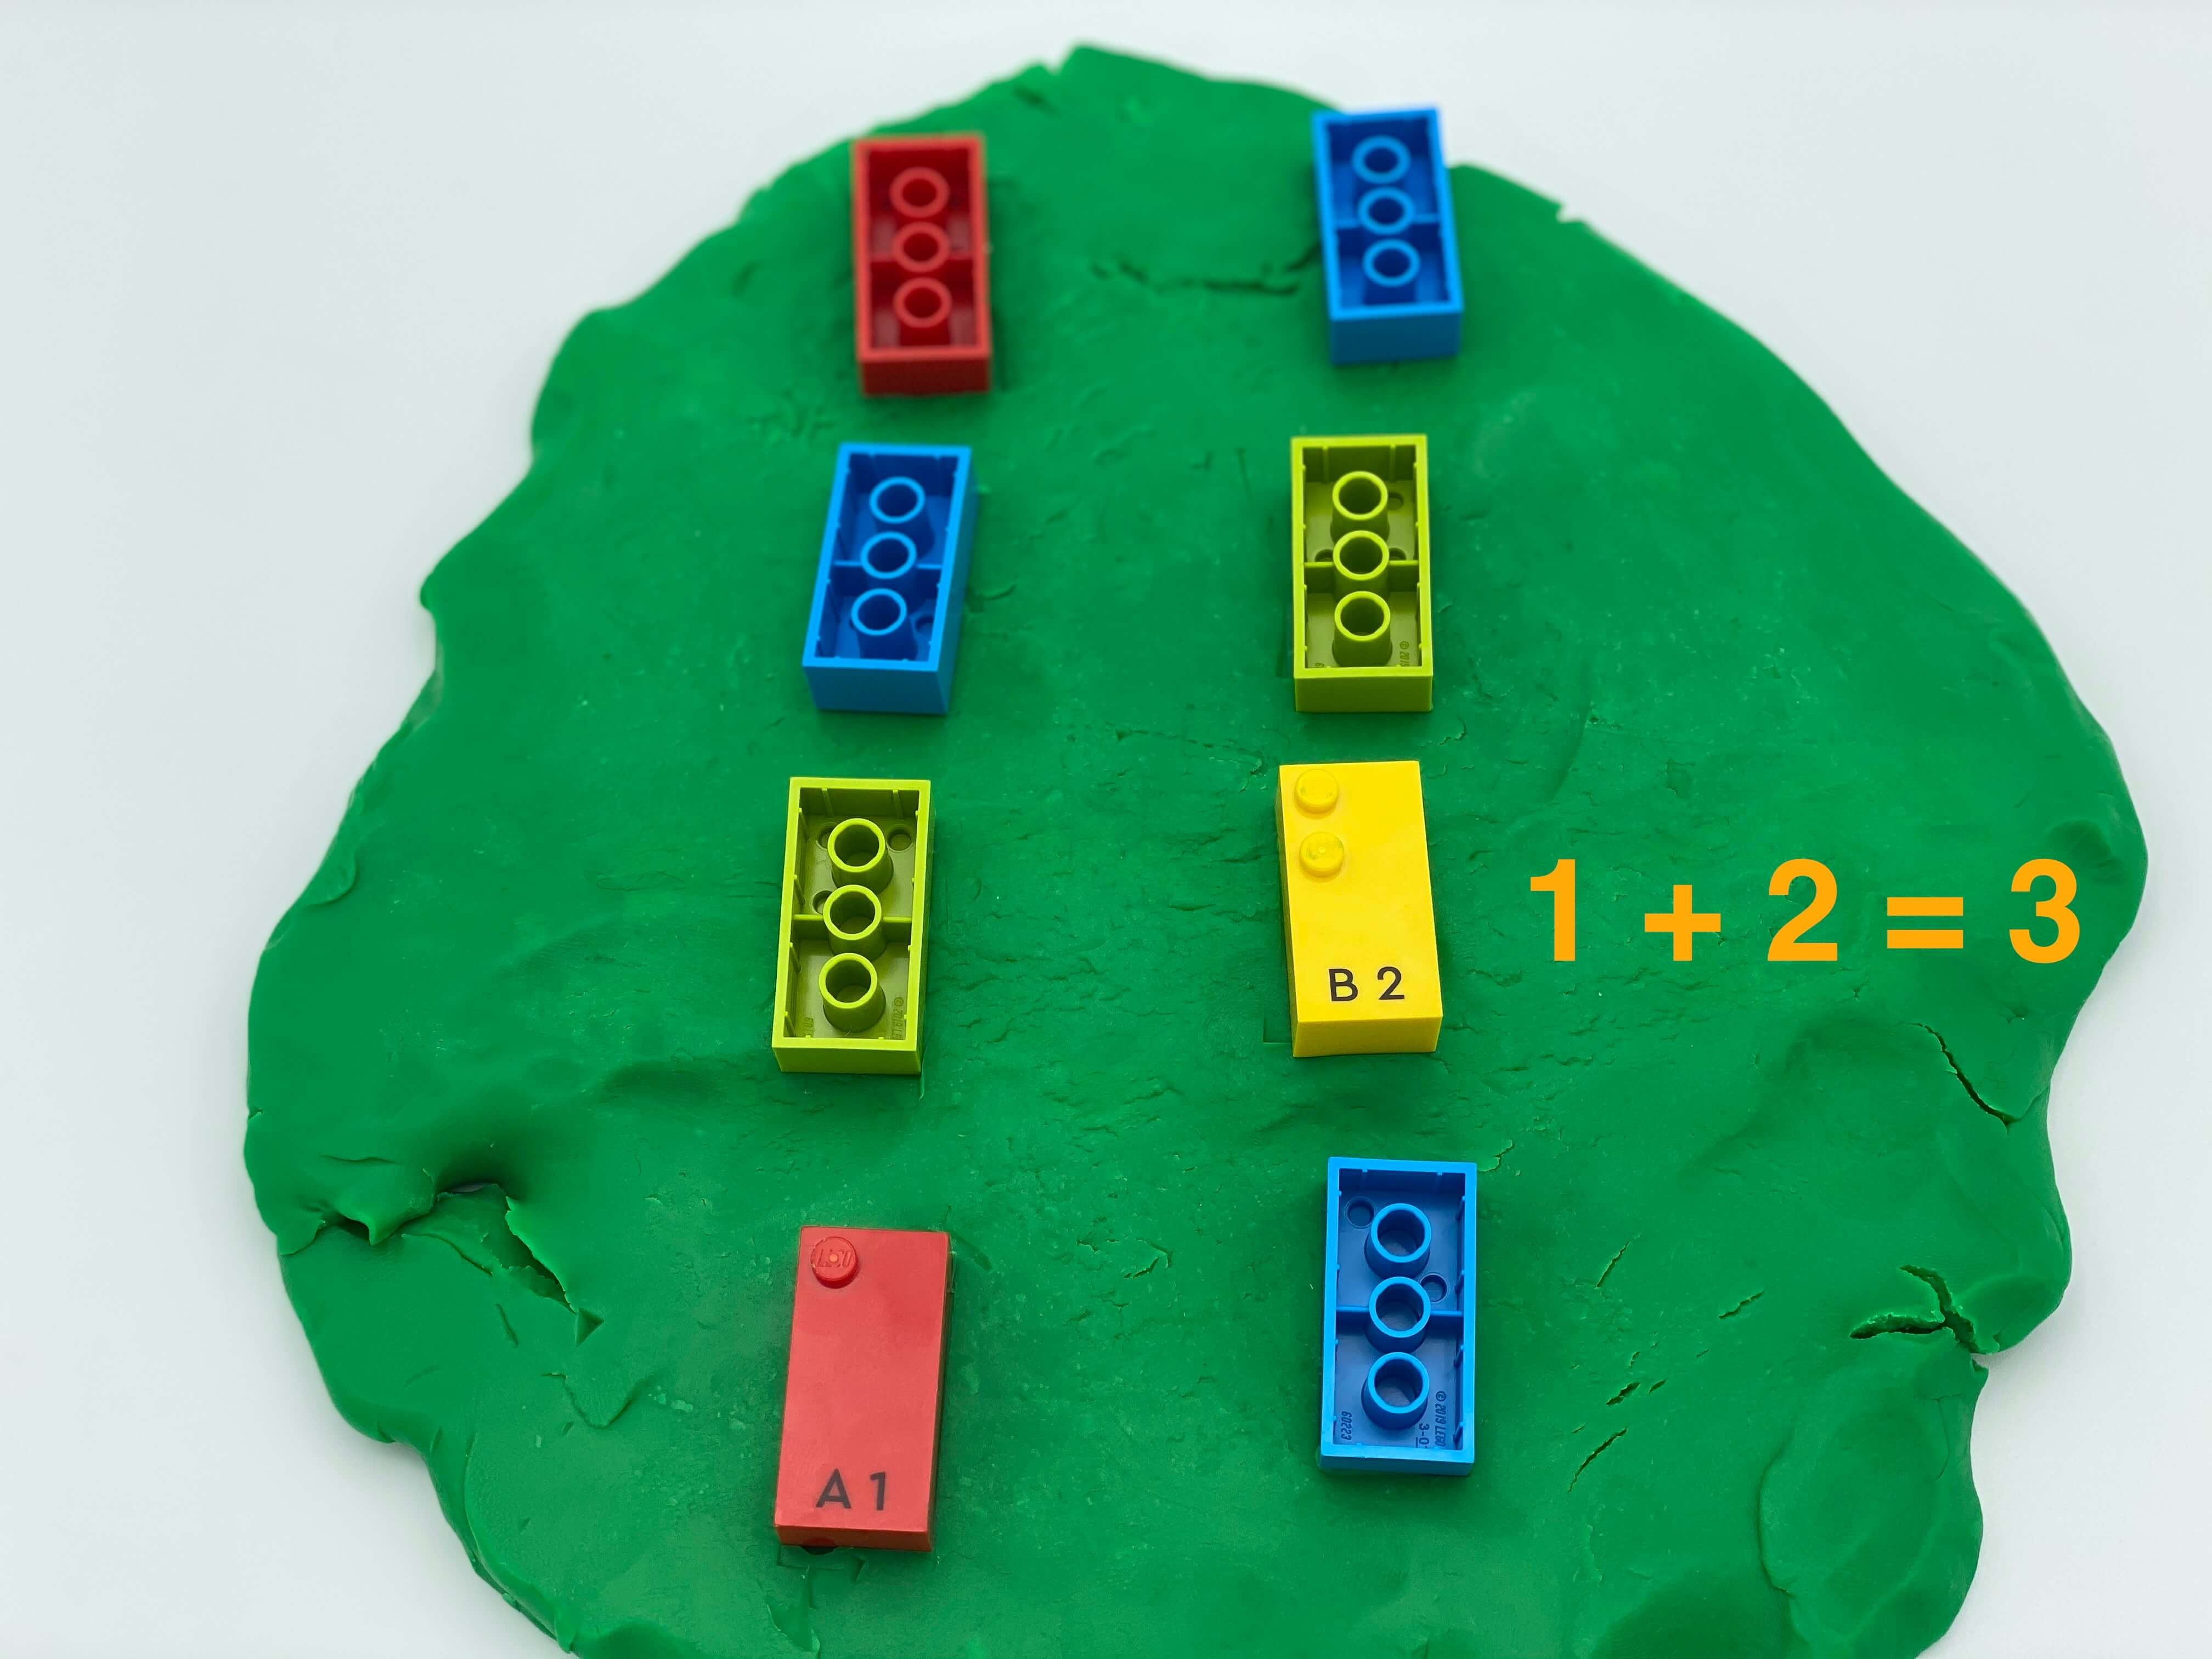 A disc of play dough with 8 bricks: 6 upside-down, 2 right-side up showing number 1 and 2. It's written 1+2=3.